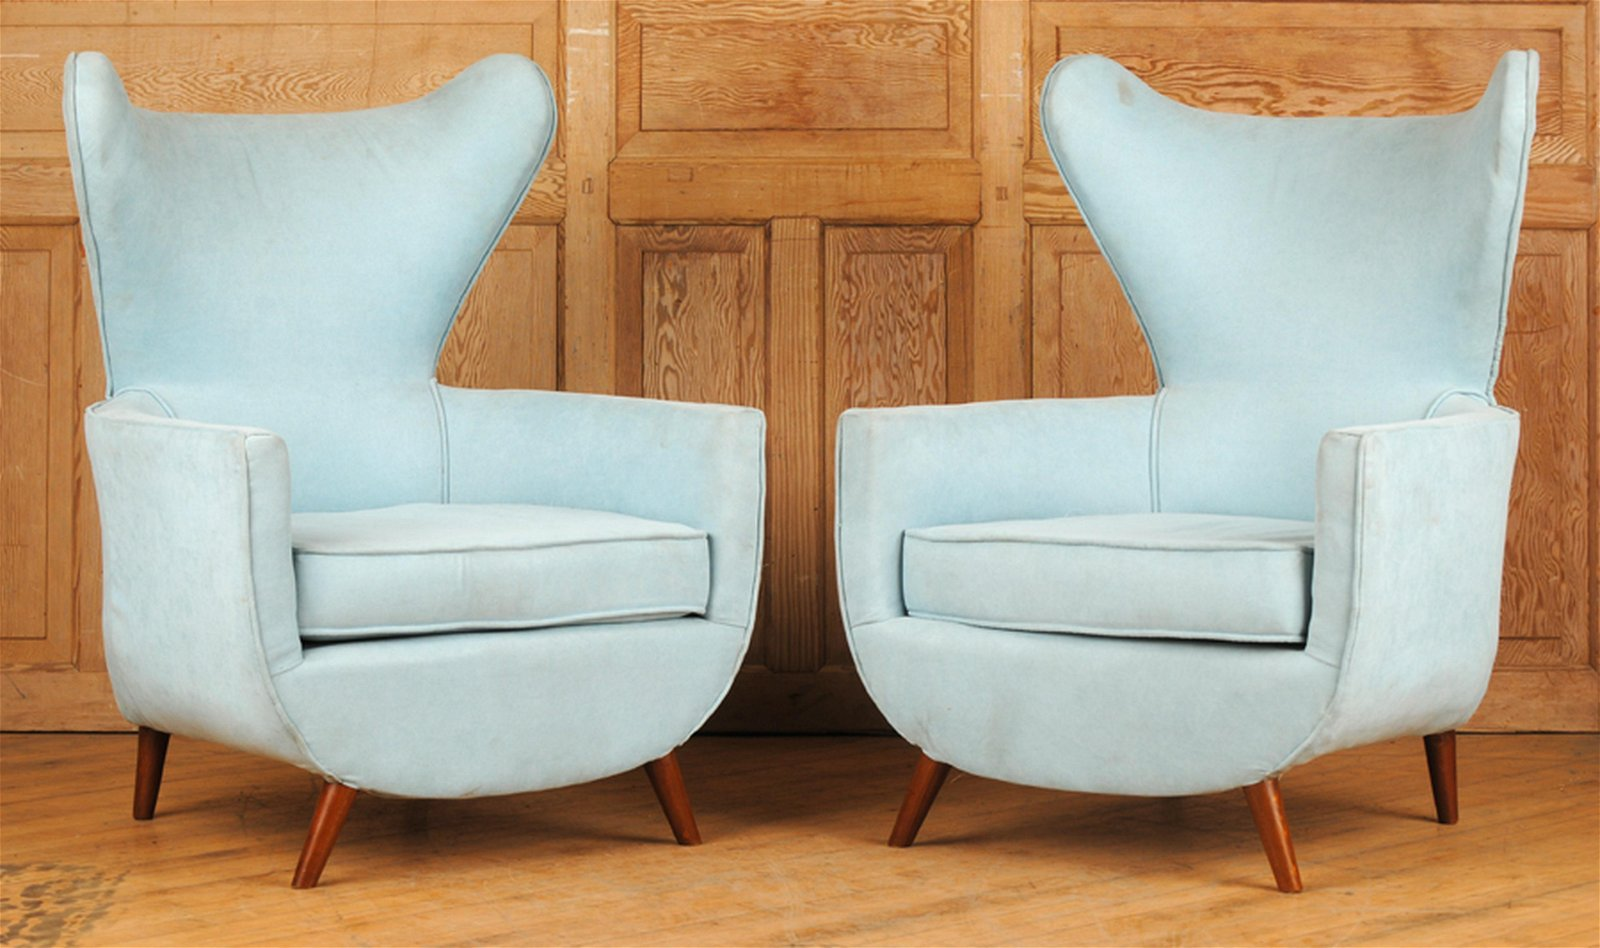 PAIR ITALIAN STYLE WING CHAIRS ON WOOD LEGS